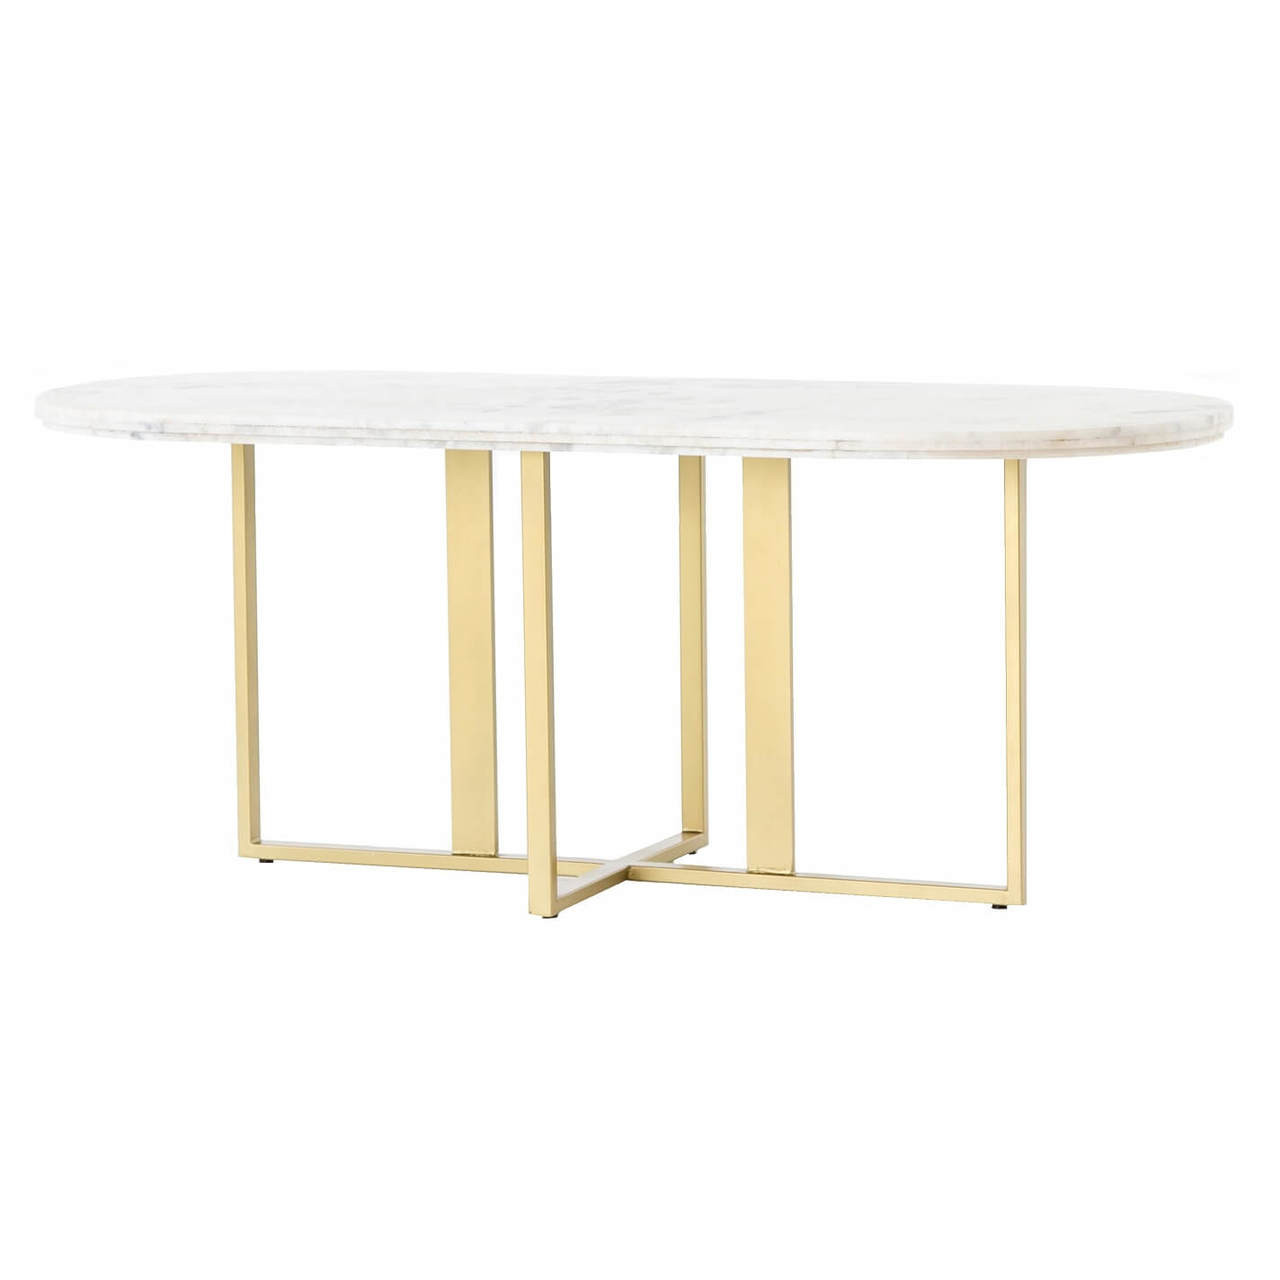 Marble Coffee Table With Copper Legs: Torino Brass Leg White Marble Oval Dining Room Tables 74